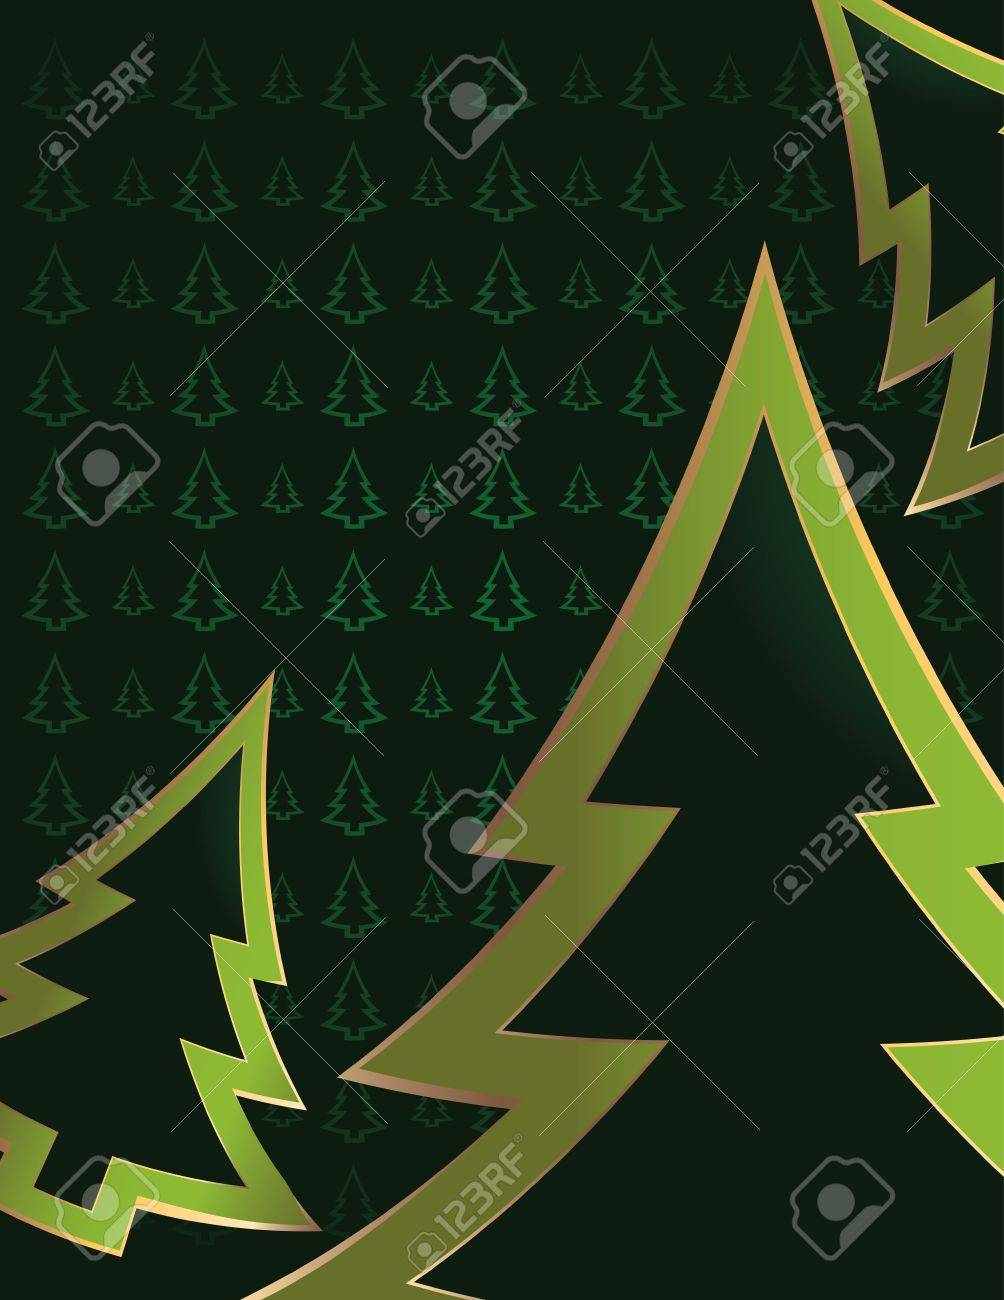 Bright green pine tree outlines cropped on a darker green pine tree patterned background - 4720642